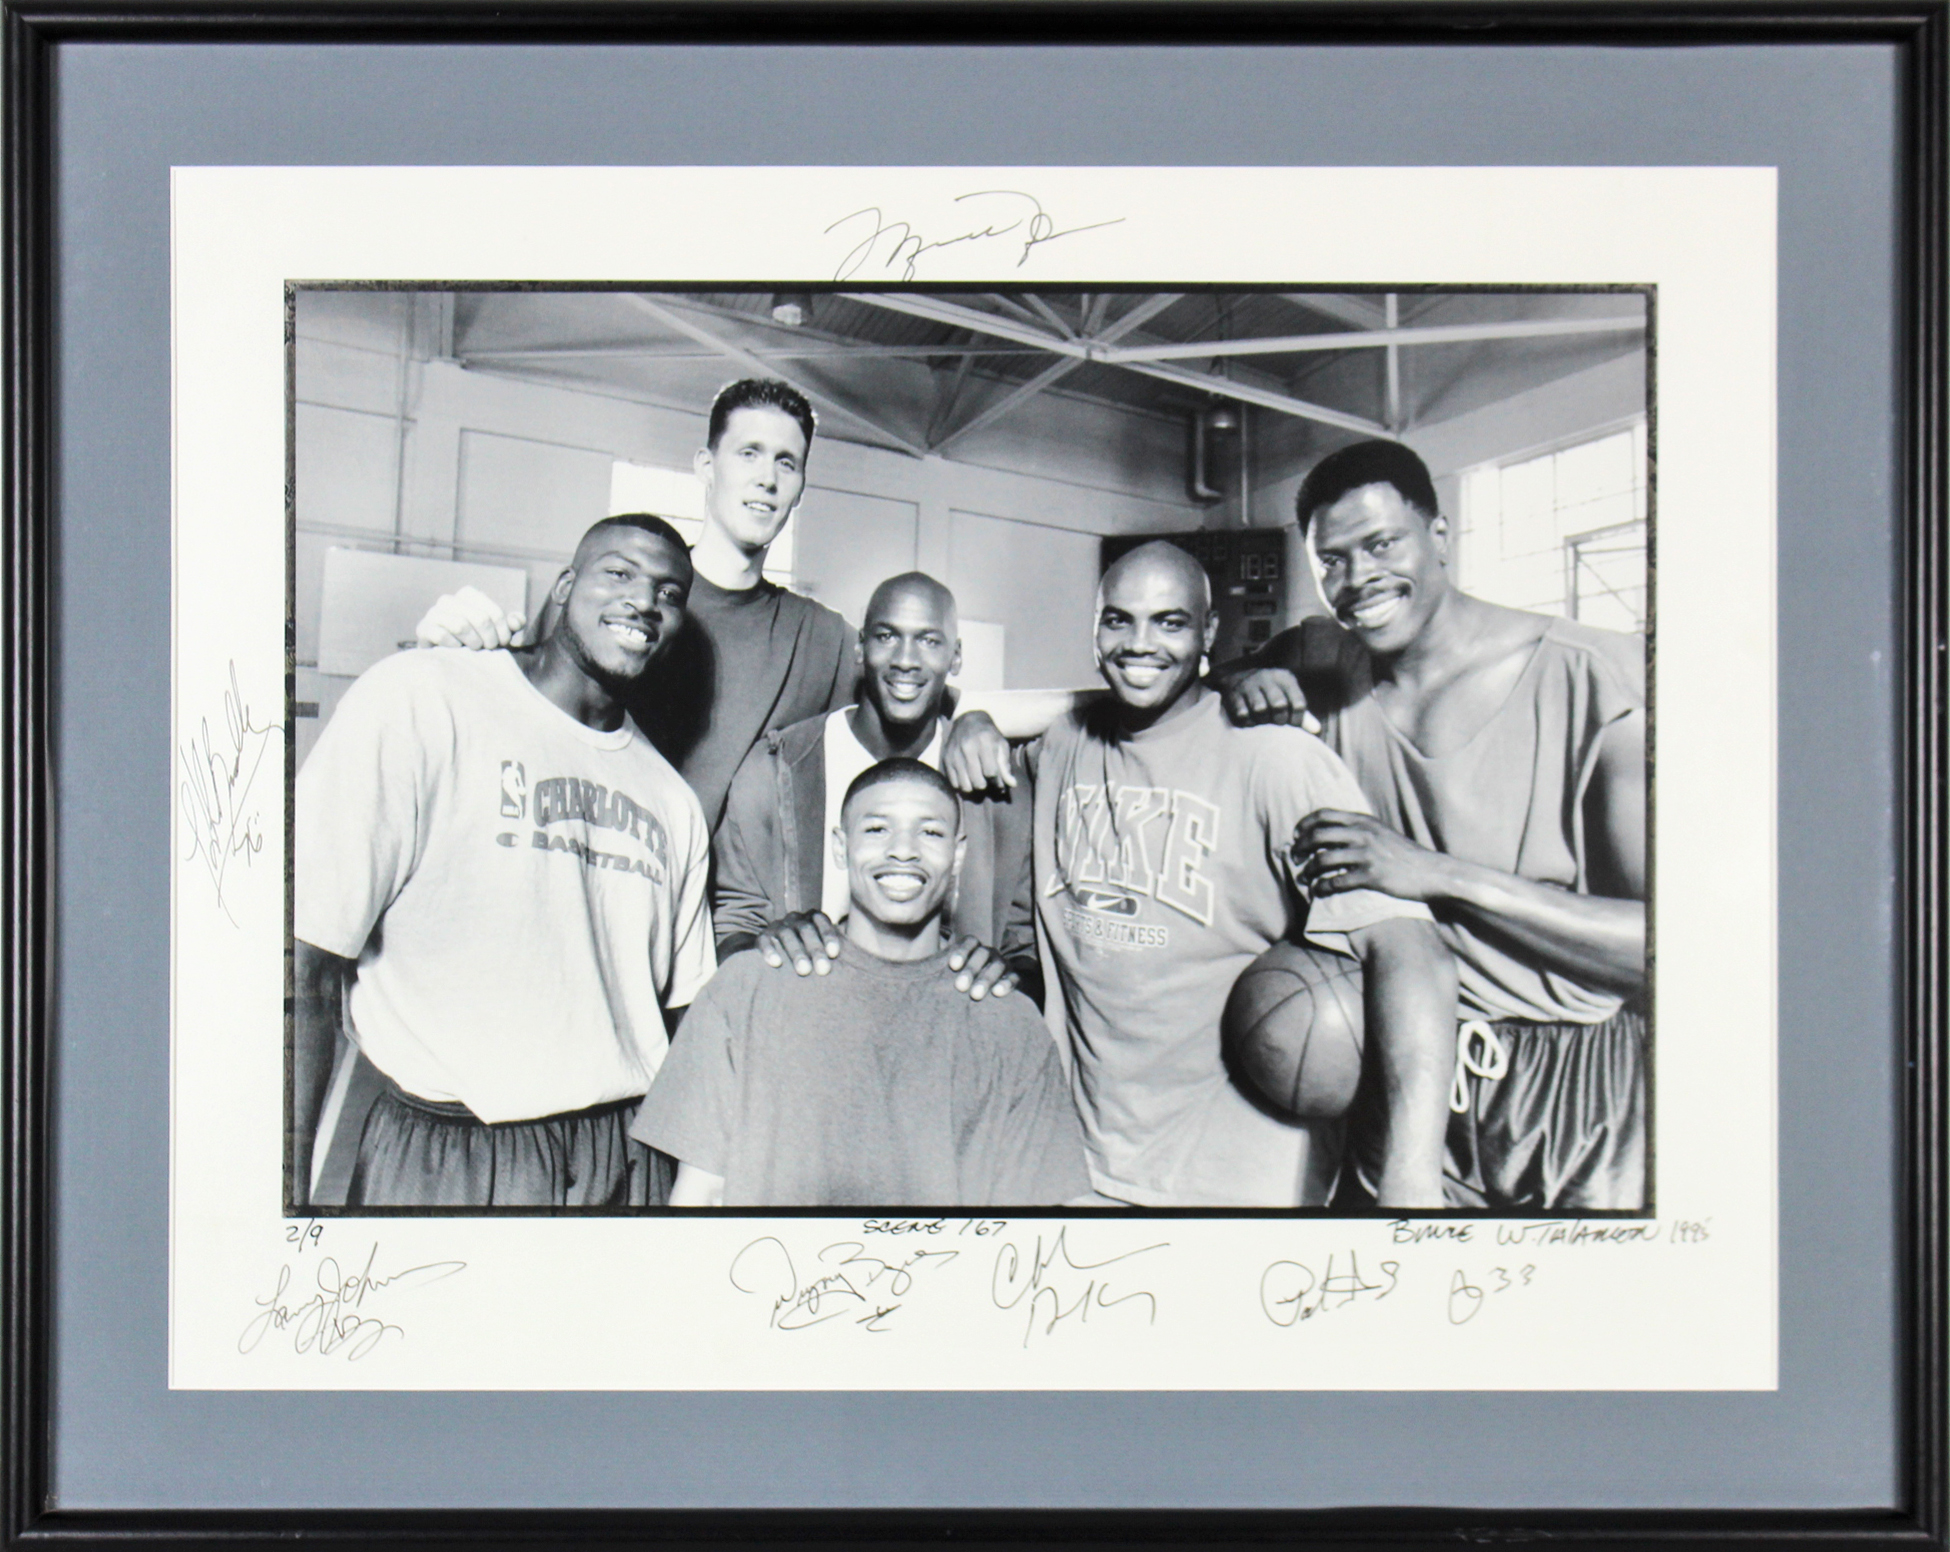 Space Jam (7) Jordan, Barkley, Ewing Signed & Framed 18x24 Photo LE #2/9 BAS LOA